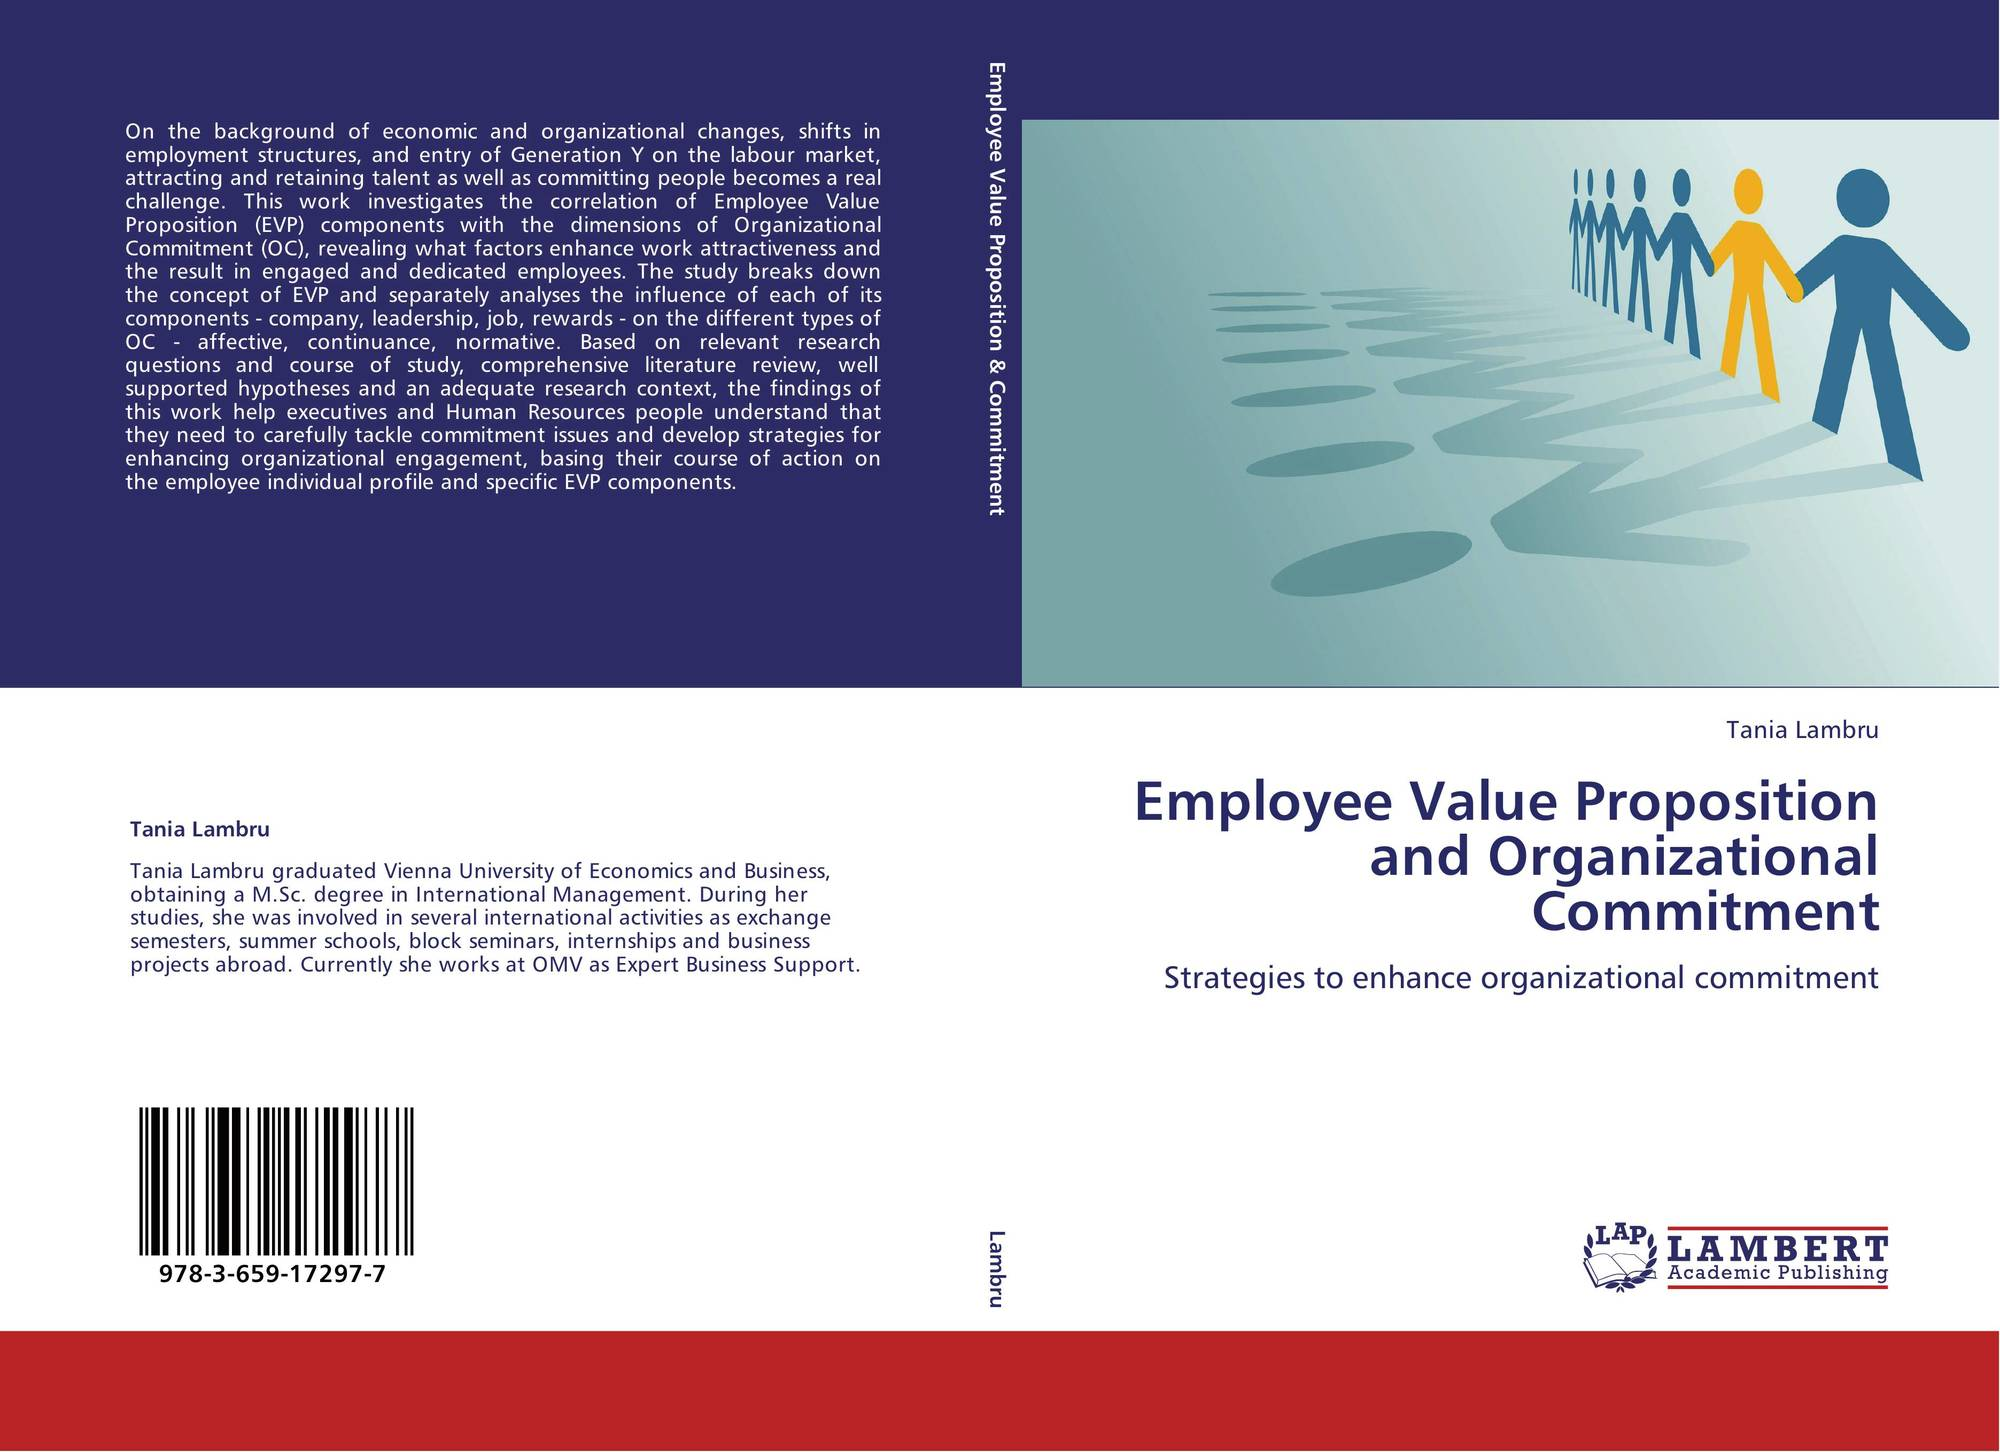 how to show commitment to organizational values